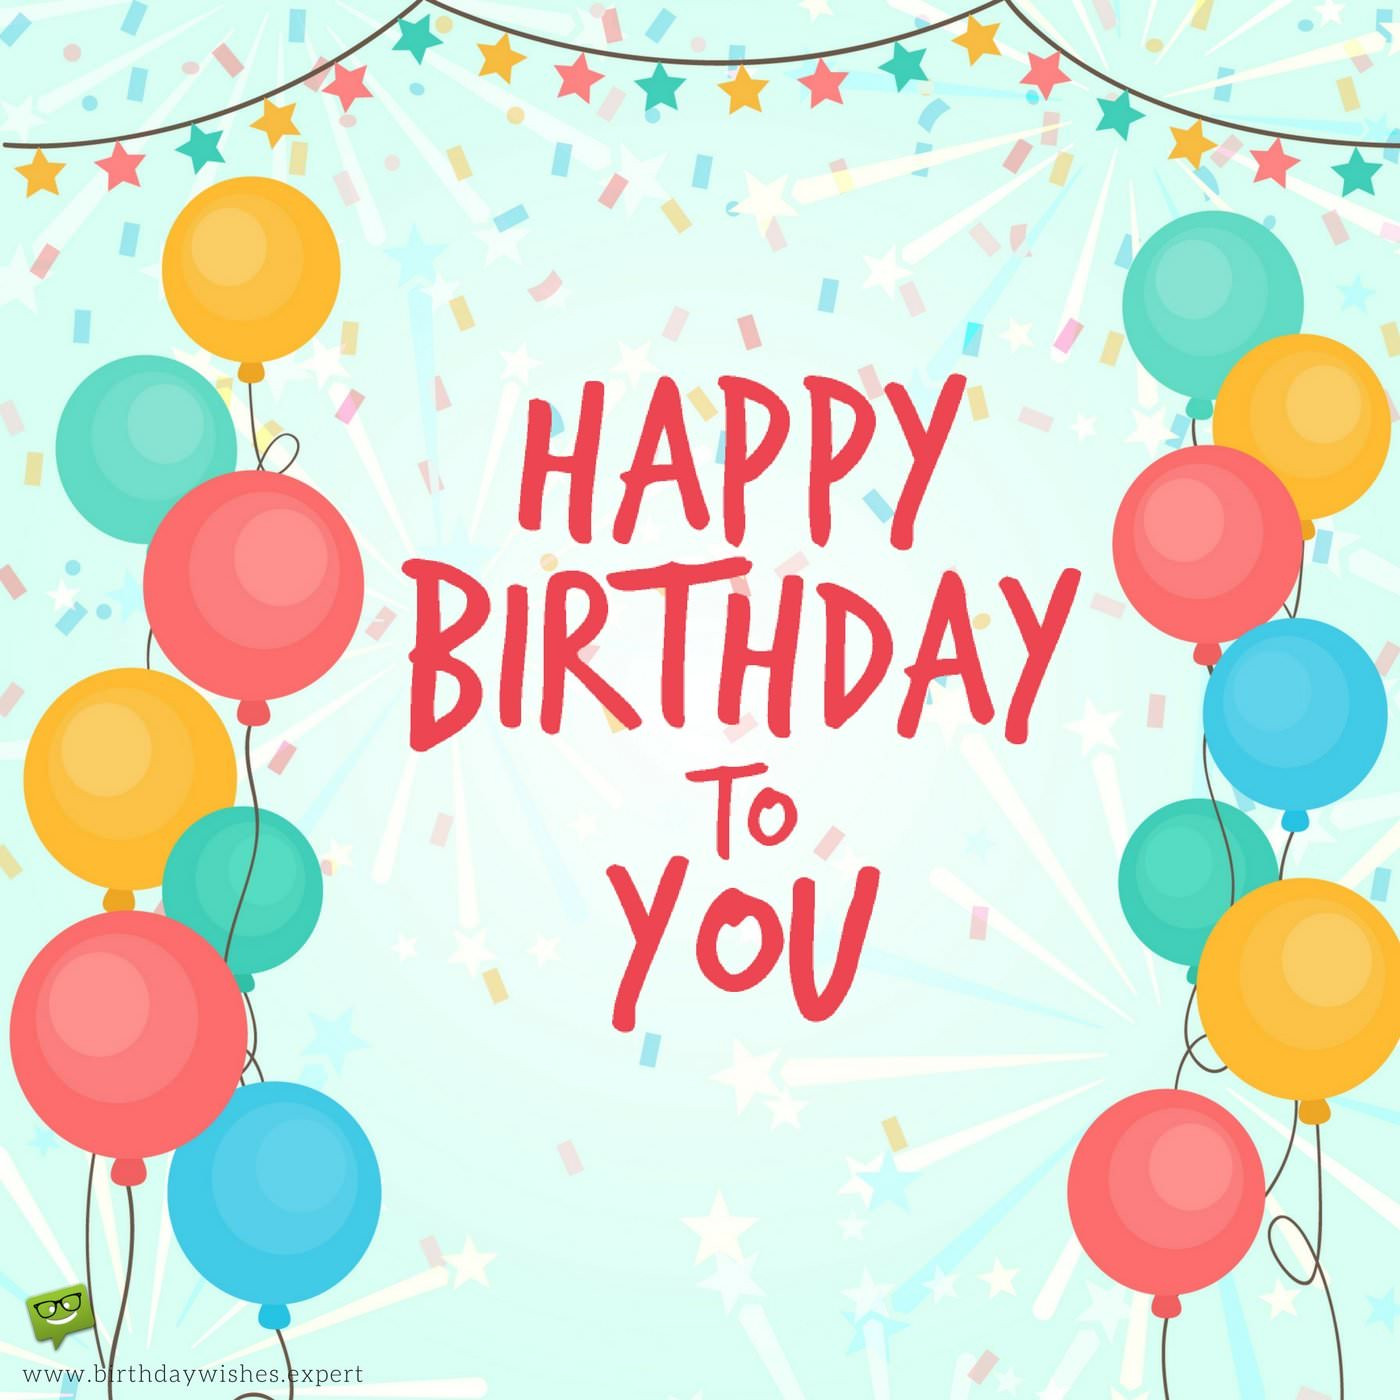 Best ideas about A Birthday Wish . Save or Pin The Coolest Birthday Wishes for a Special Friend Now.